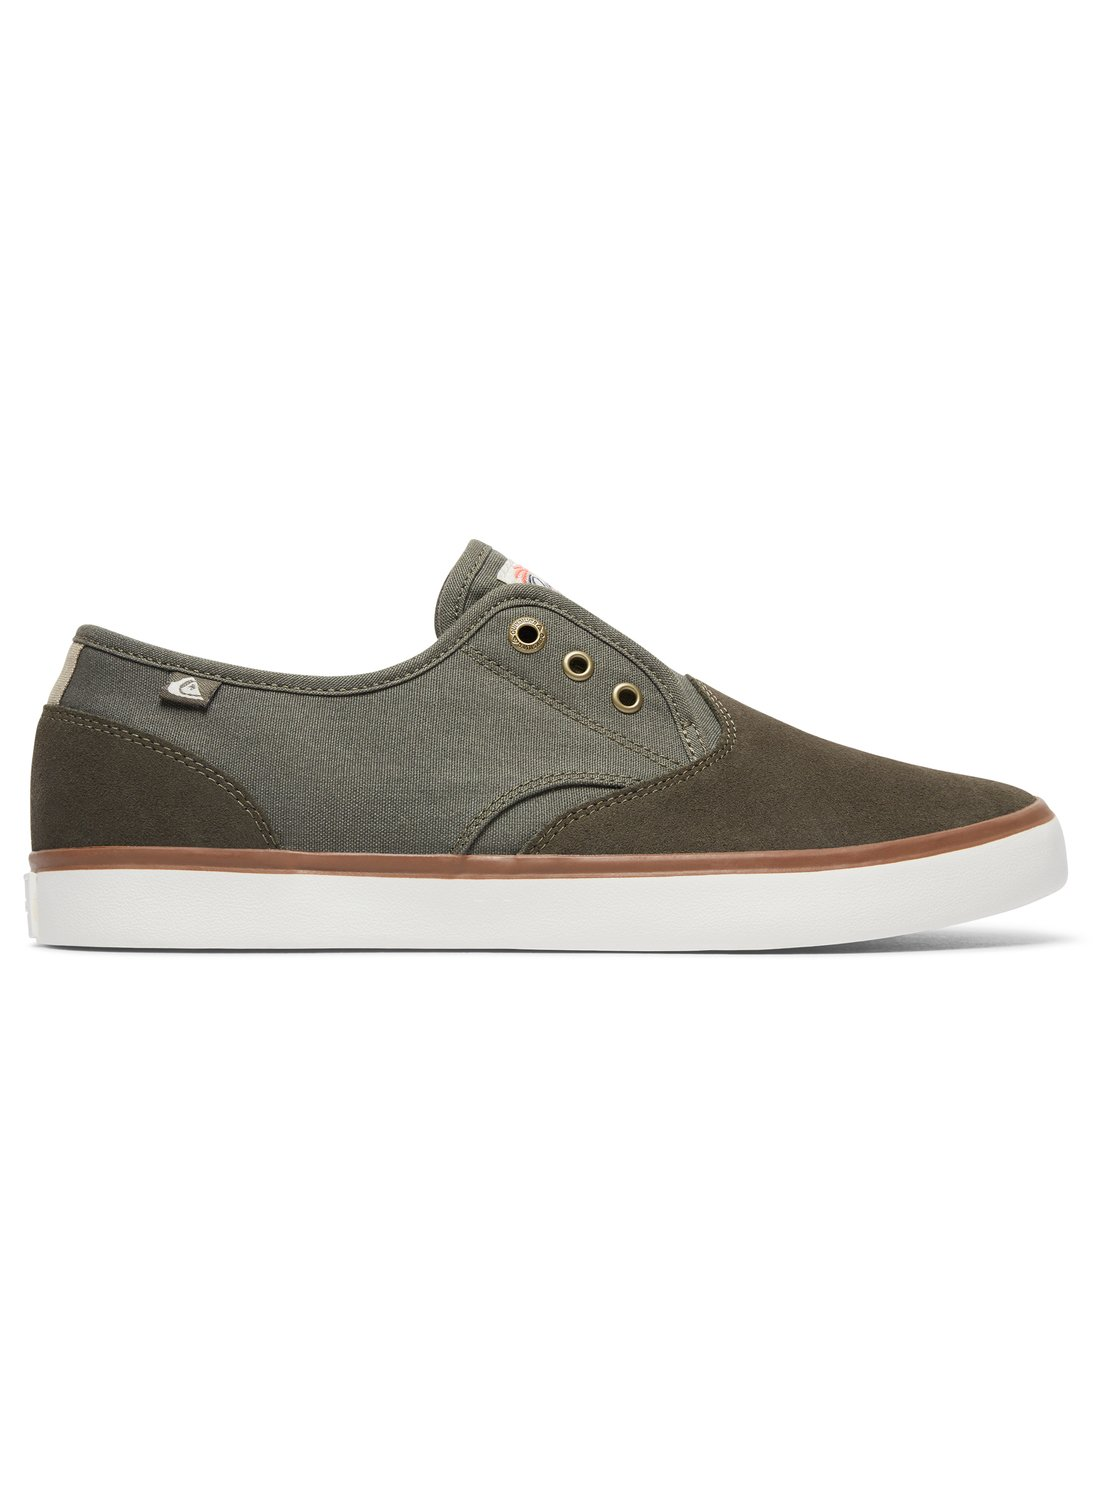 Quiksilver Shorebreak Deluxe - Laceable Slip-on Shoes - Homme